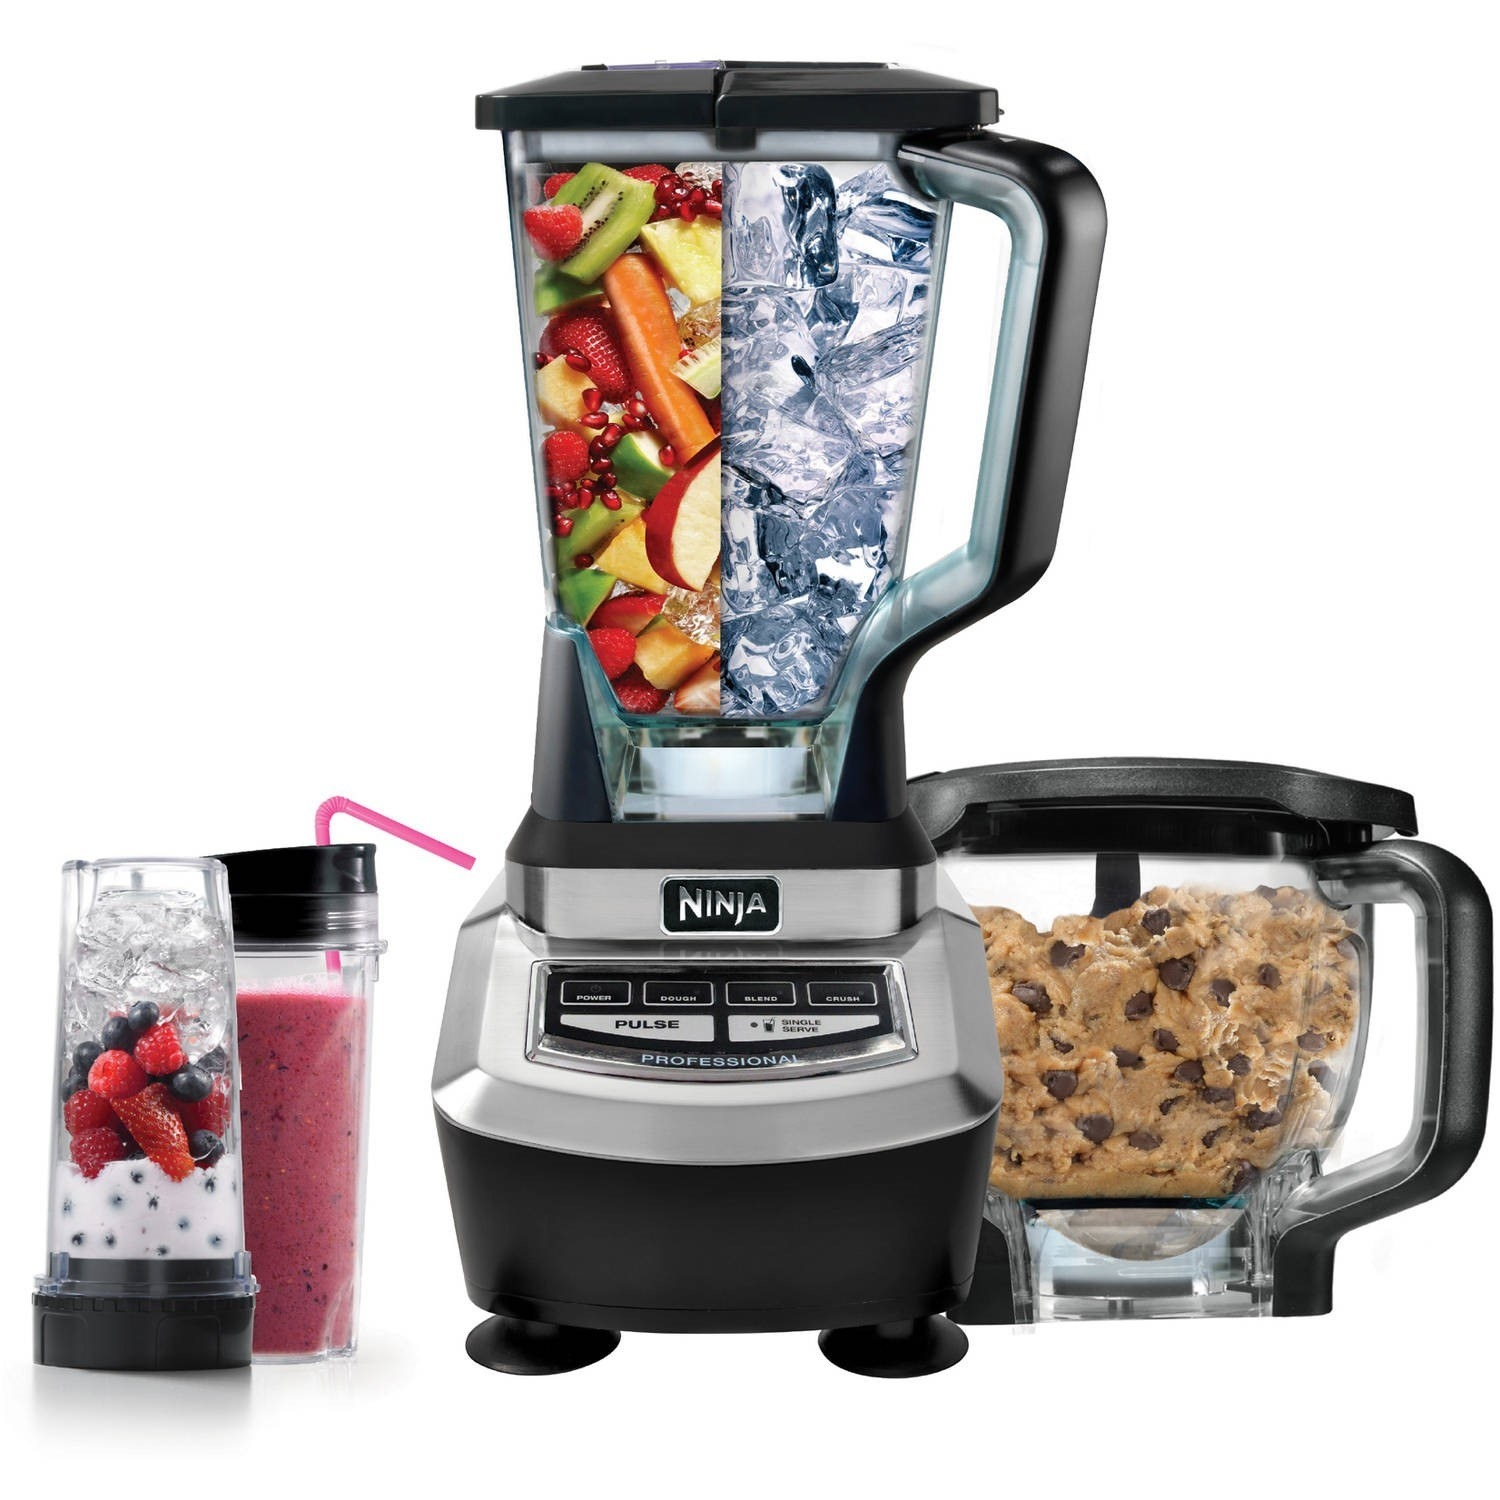 """""""My Ninja kitchen system. It's a blender, food processor, smoothie maker all in one. And it came with two tumbler lids for the smoothie cups. I got it on sale for $100. The amount of cabinet space I got back and the amount of time I save cooking is well worth that $100.""""—annettet48daf4f19Unfortunately the full set with the food processor's not discounted right now, although you can still get it from Amazon or Walmart for $149. If you want to stick closer to $100, you can get the blender plus two smoothie cups and smoothie lids on Amazon for $99.98."""